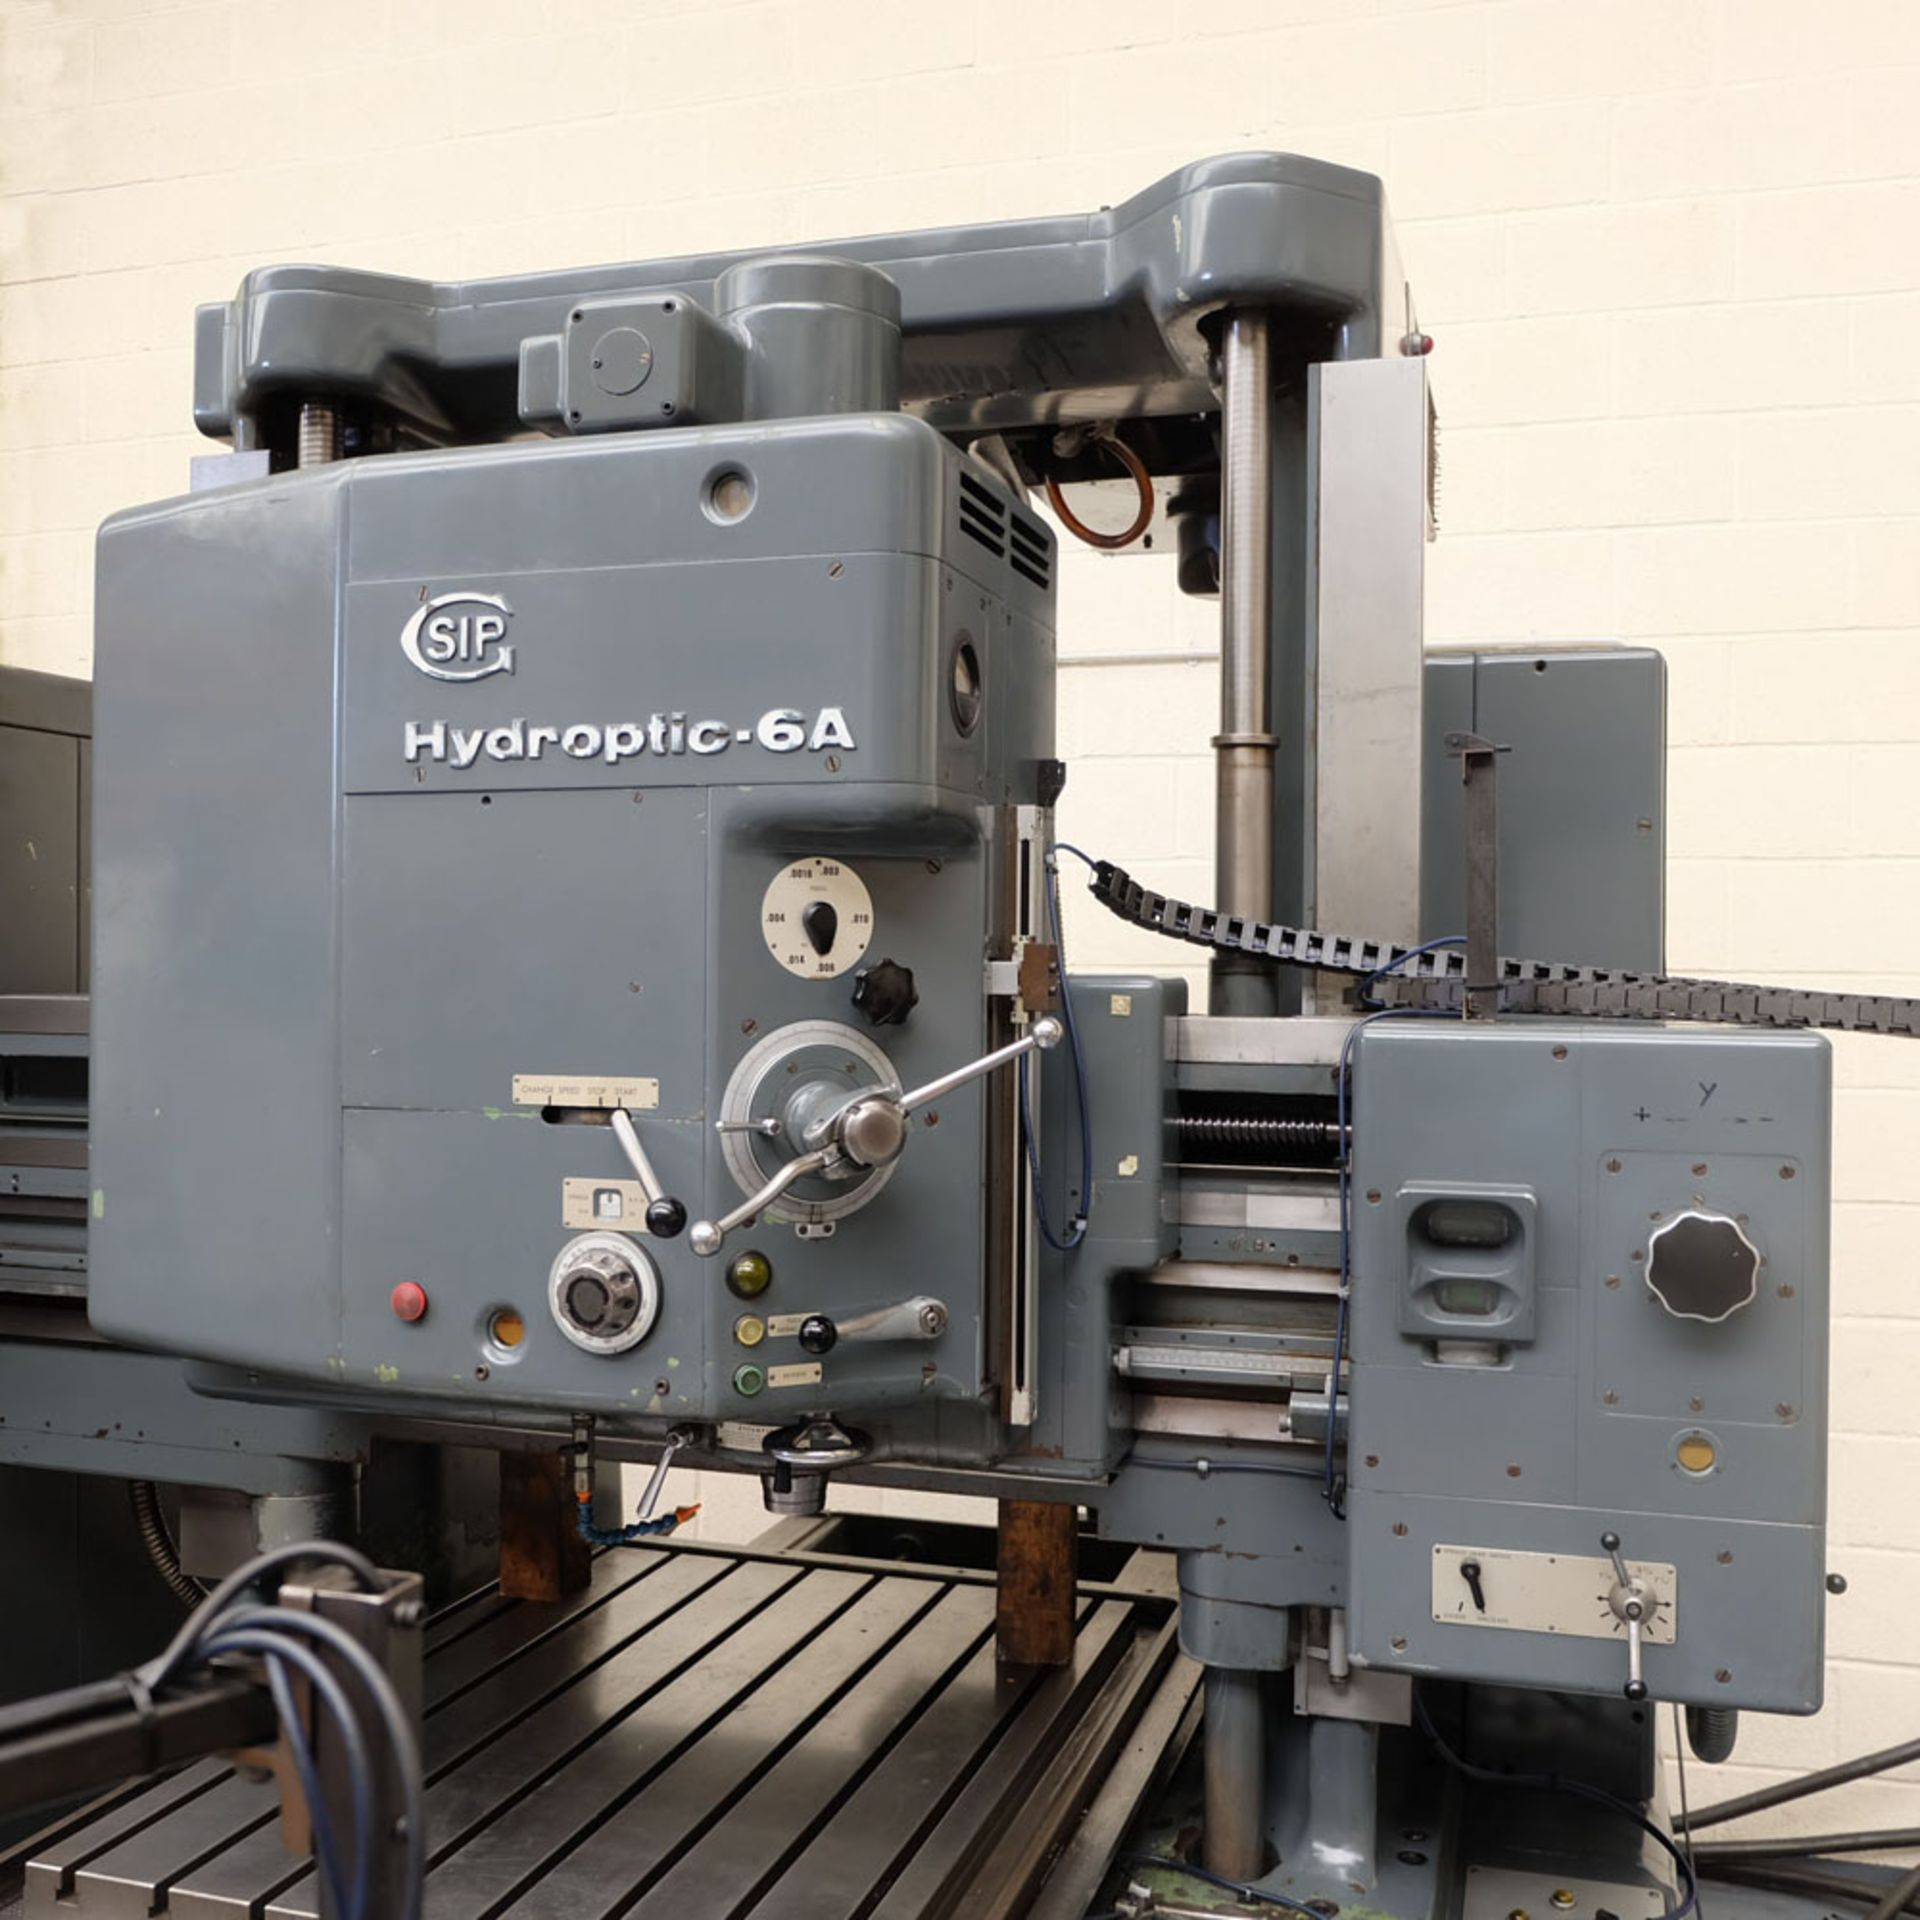 SIP Genevoise Hydroptic - 6A High Precision Jig Boring And Milling Machine. - Image 2 of 25